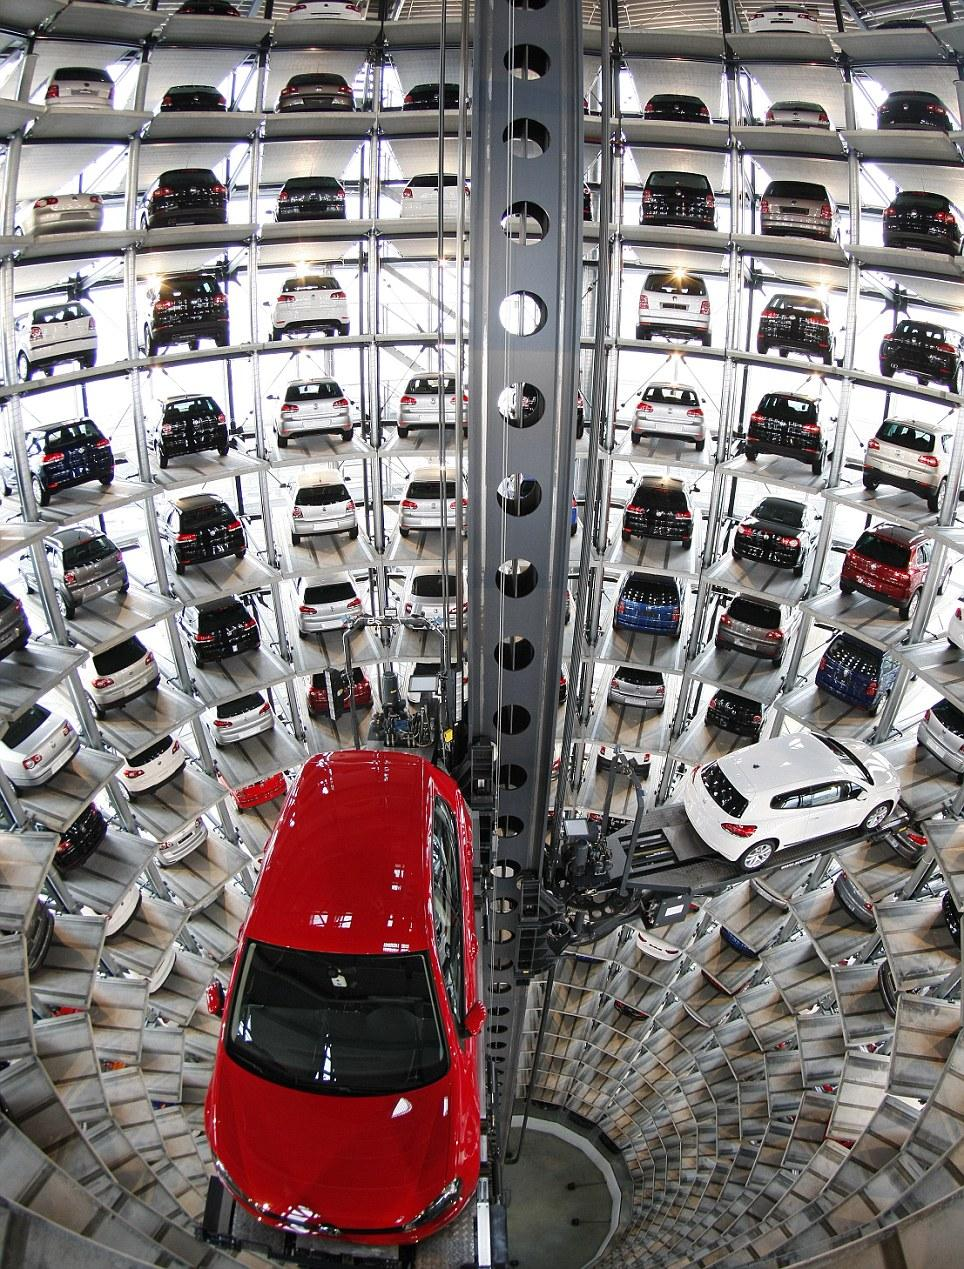 Parking tower at the Volkswagen factory in Wolfsburg. http://t.co/P3rj7fY2LN